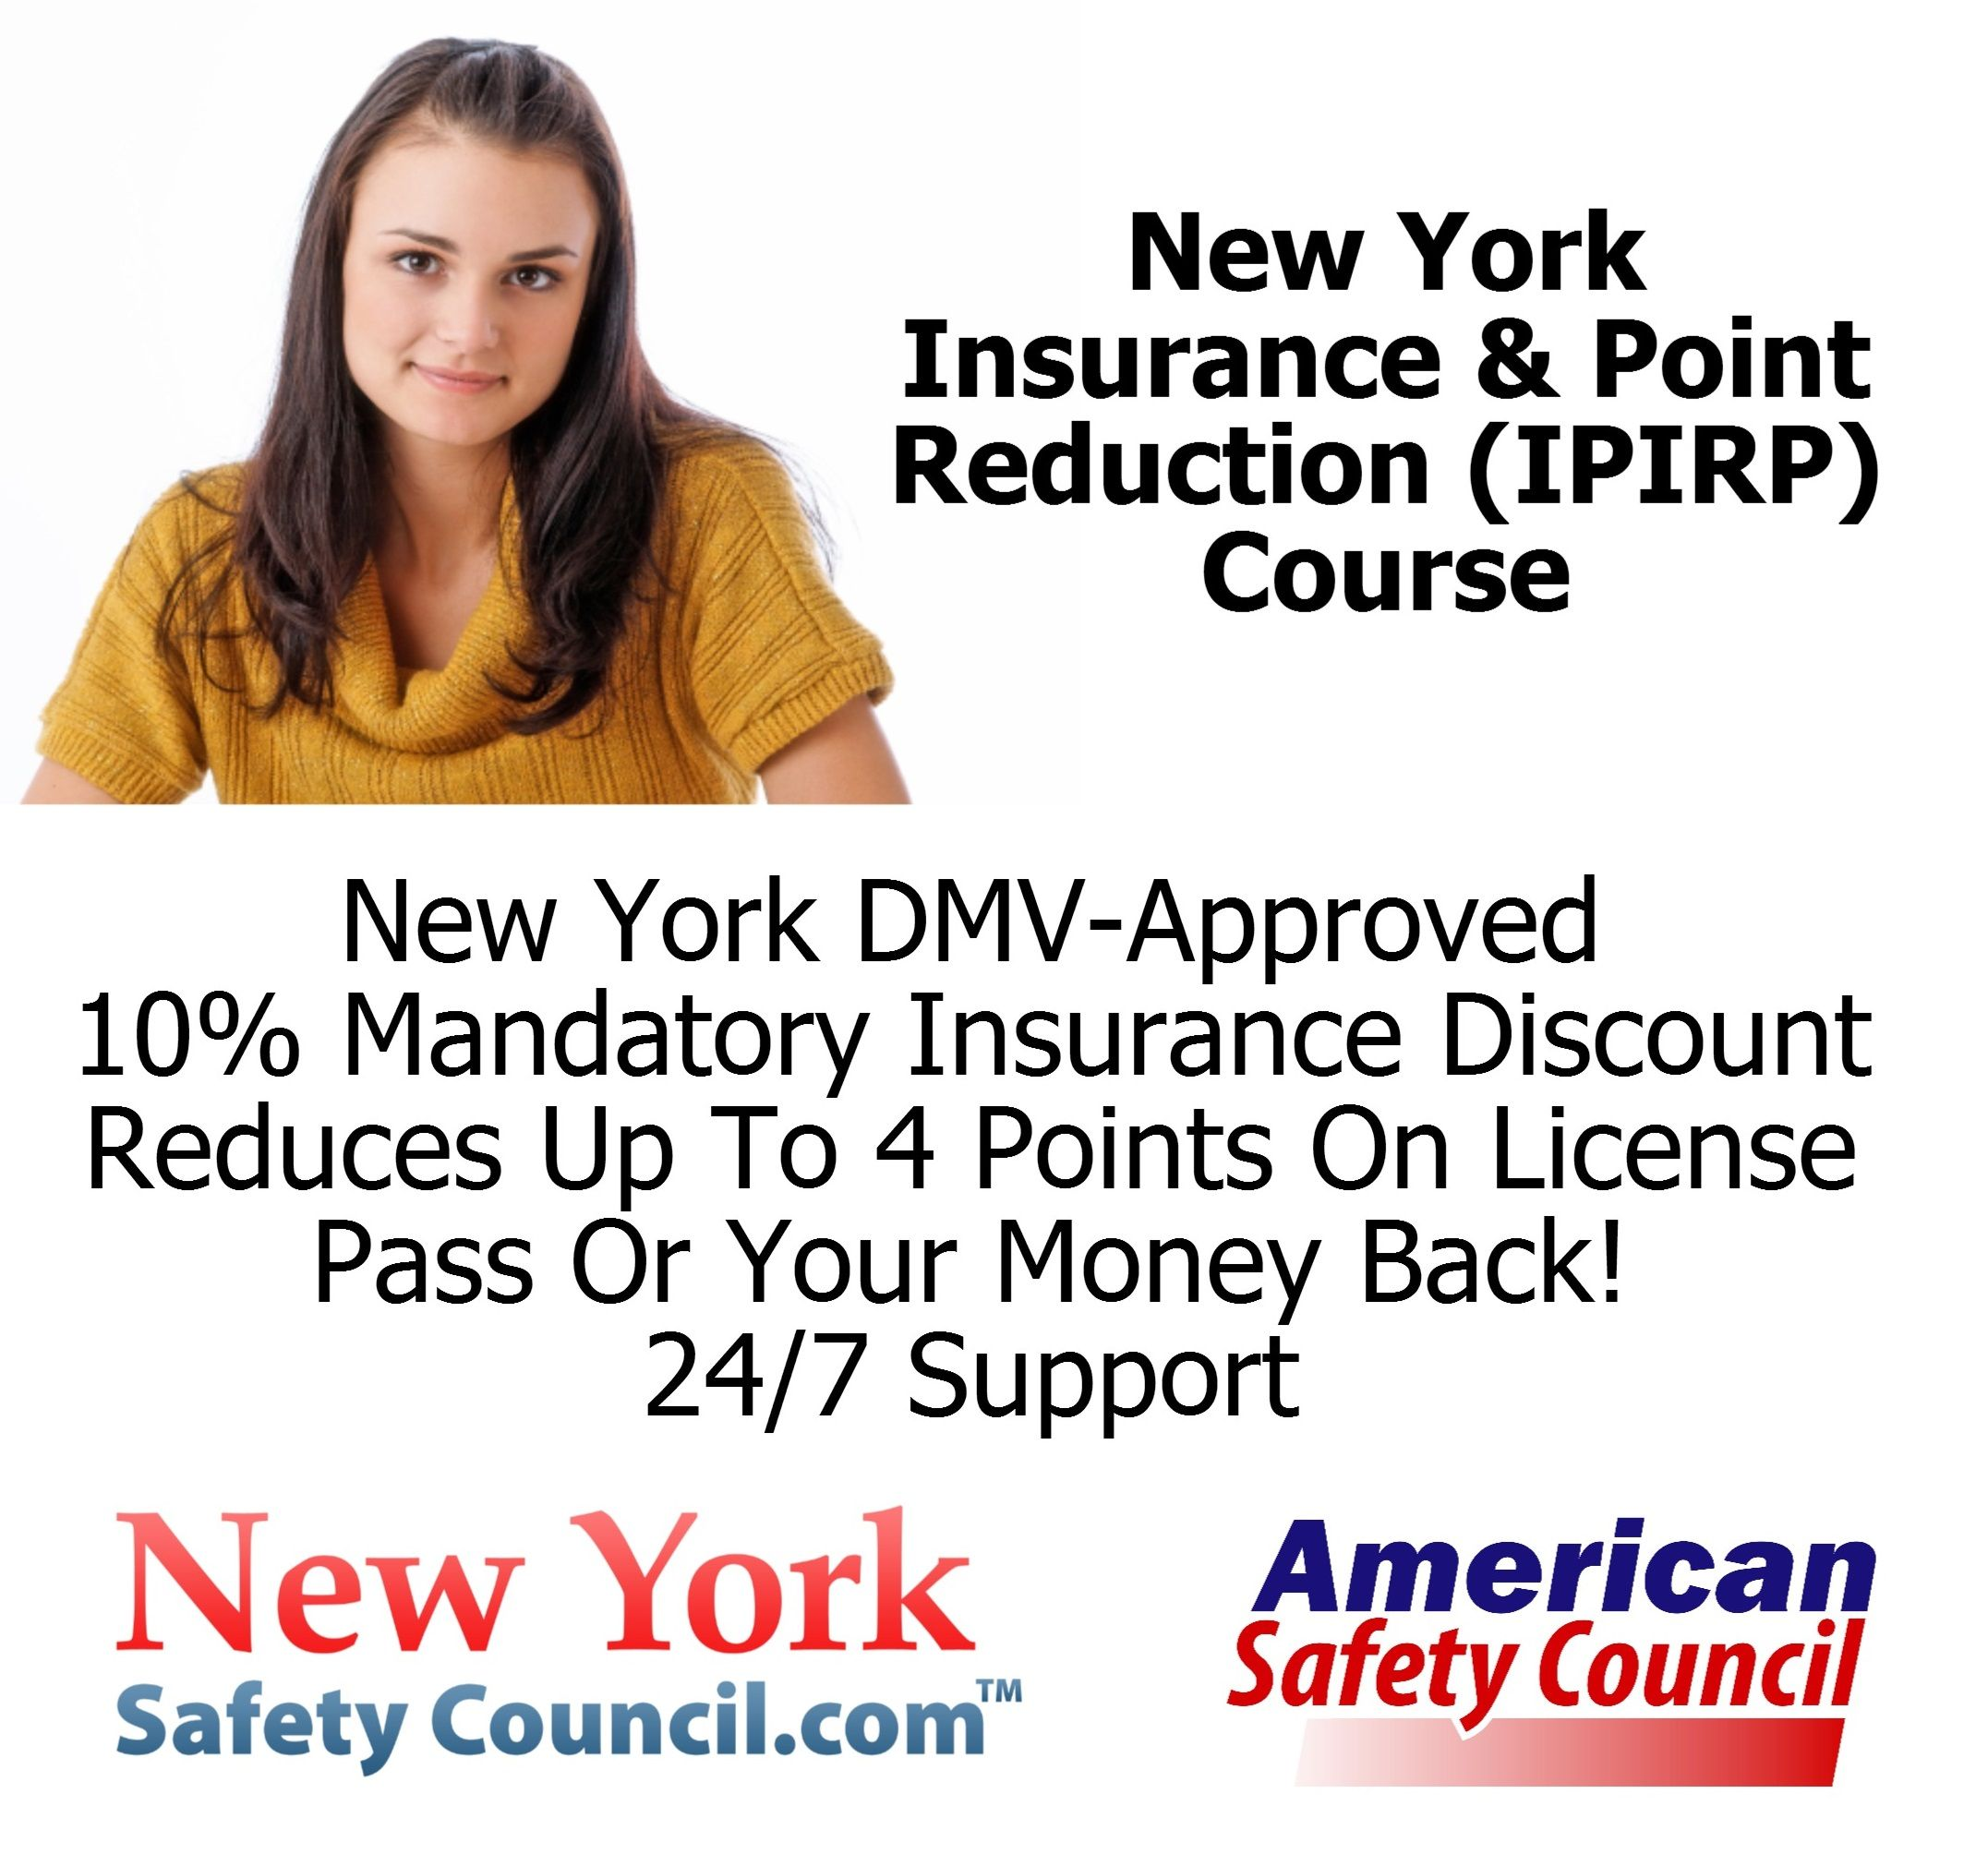 Newyorksafetycouncil Com Online Ipirp Course For Mandatory 10